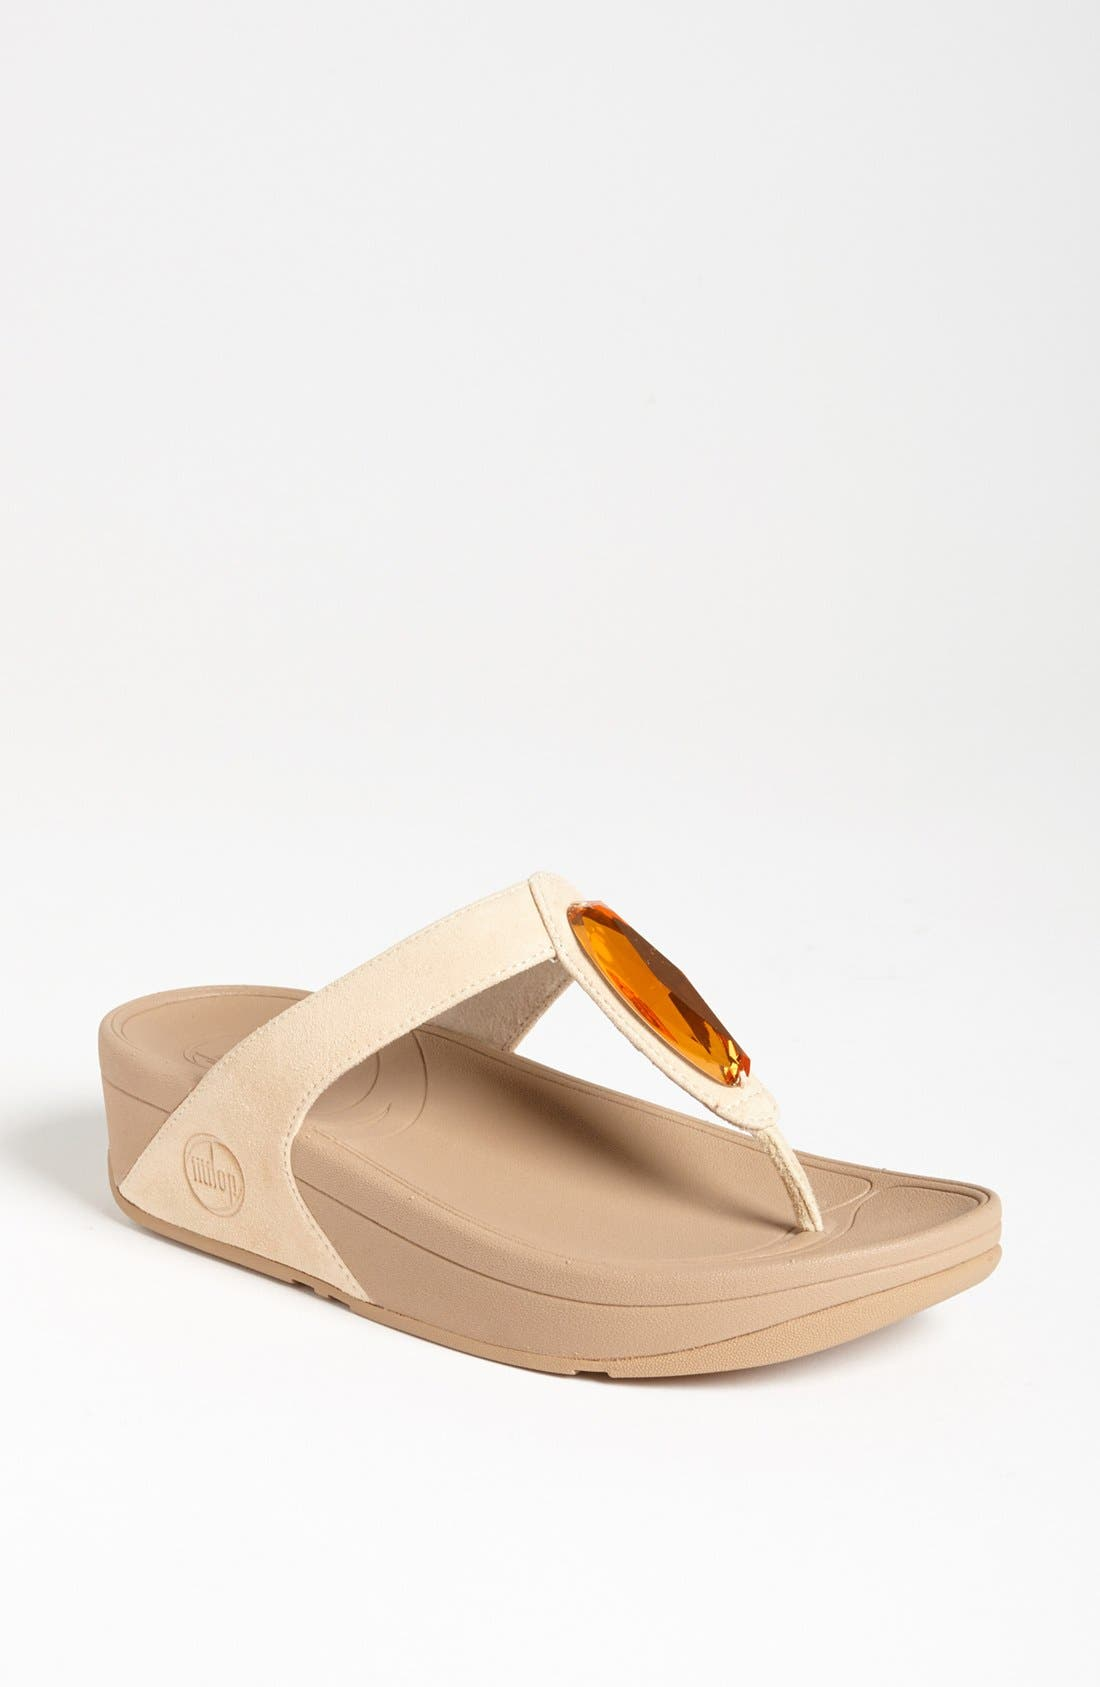 Main Image - FitFlop 'Chada™' Sandal